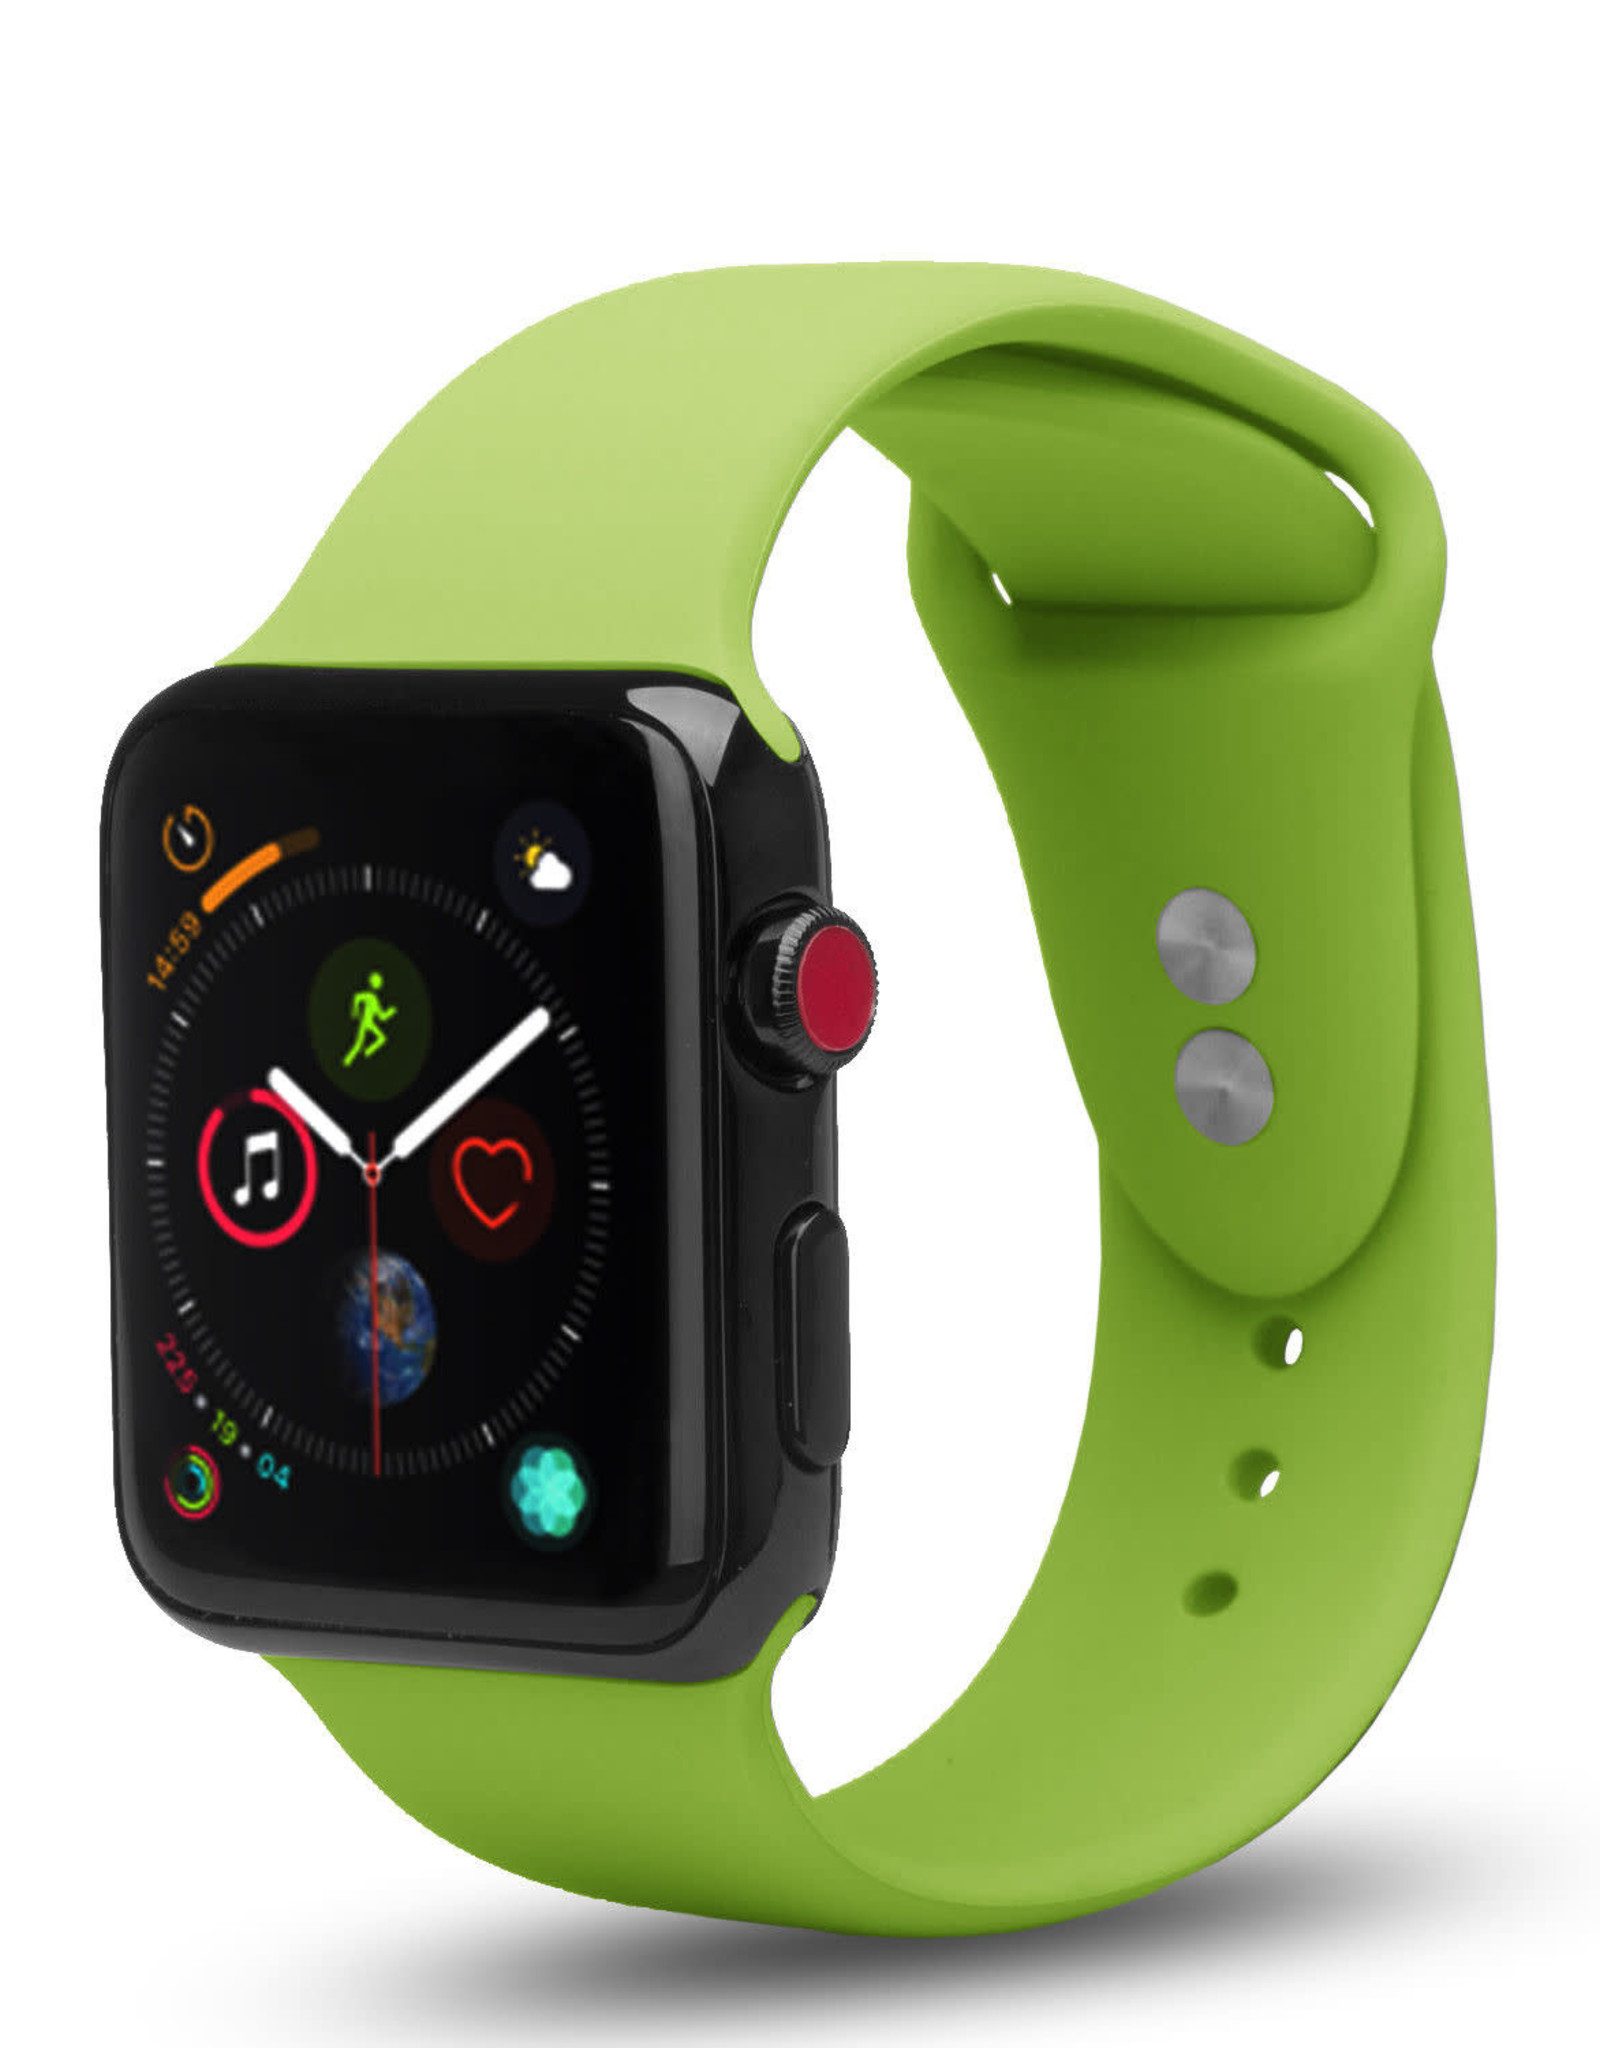 Apple Apple Watch Sports loop silicone bands 42/44mm